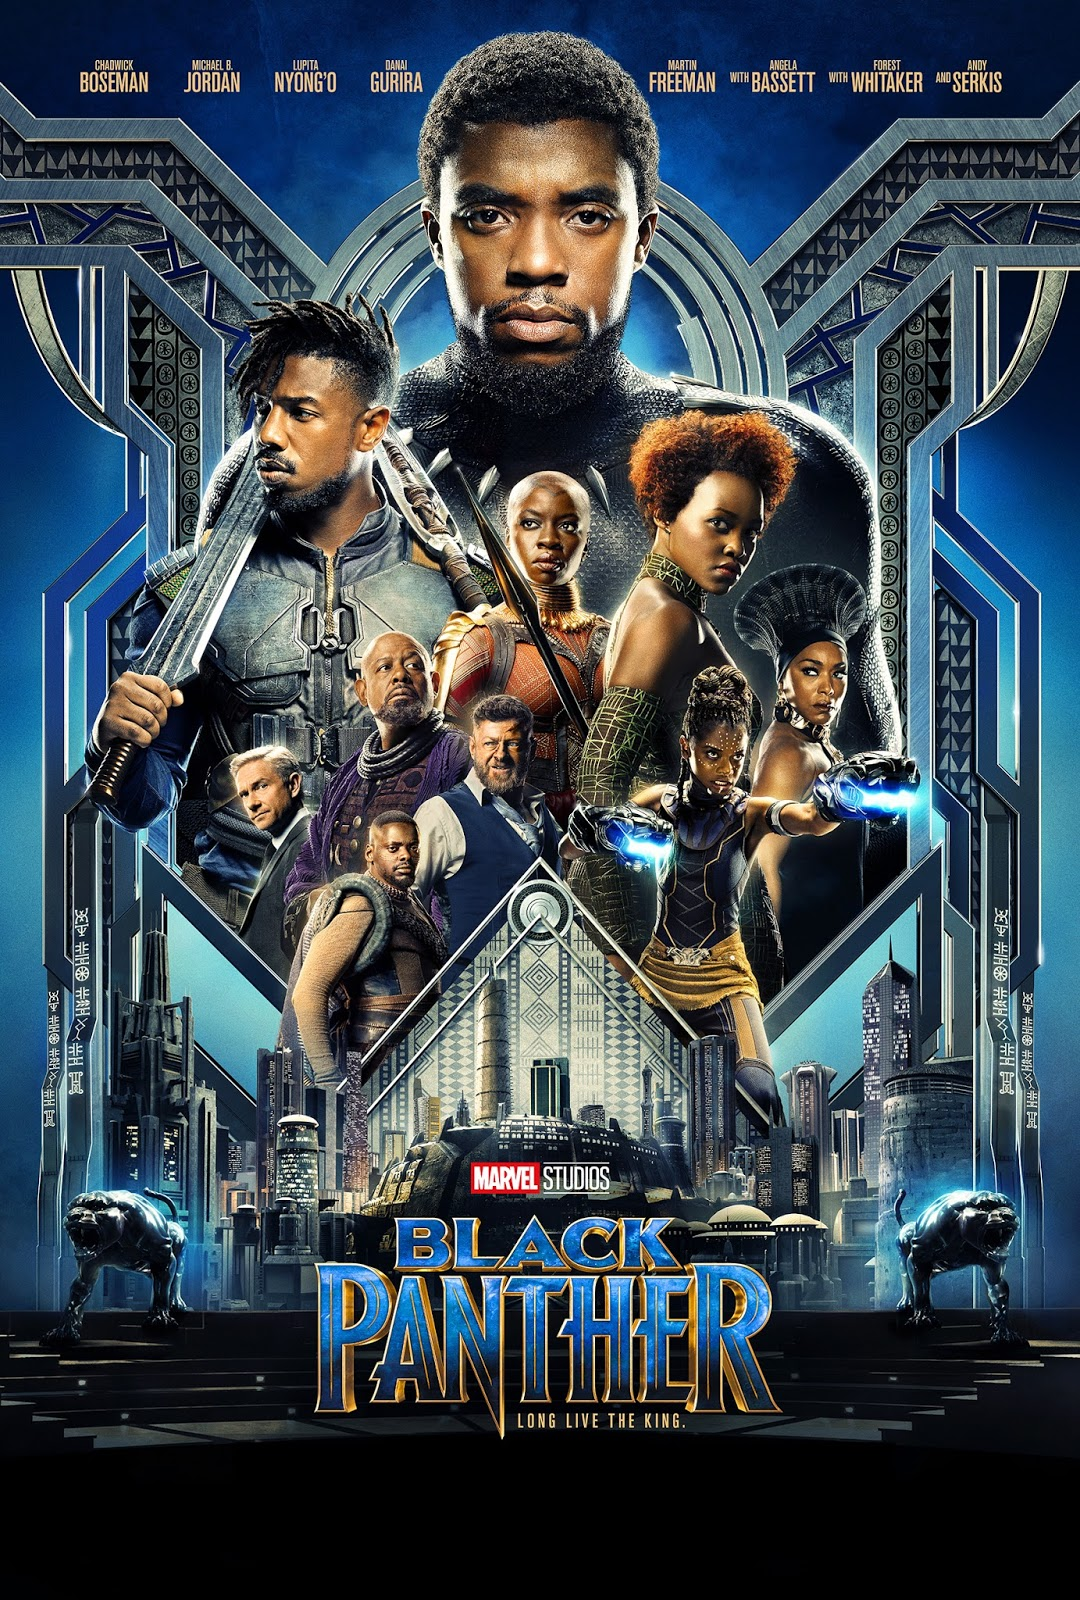 Black Panther [2018] [DVDR] [NTSC] [CUSTOM BD] [Latino 5.1]